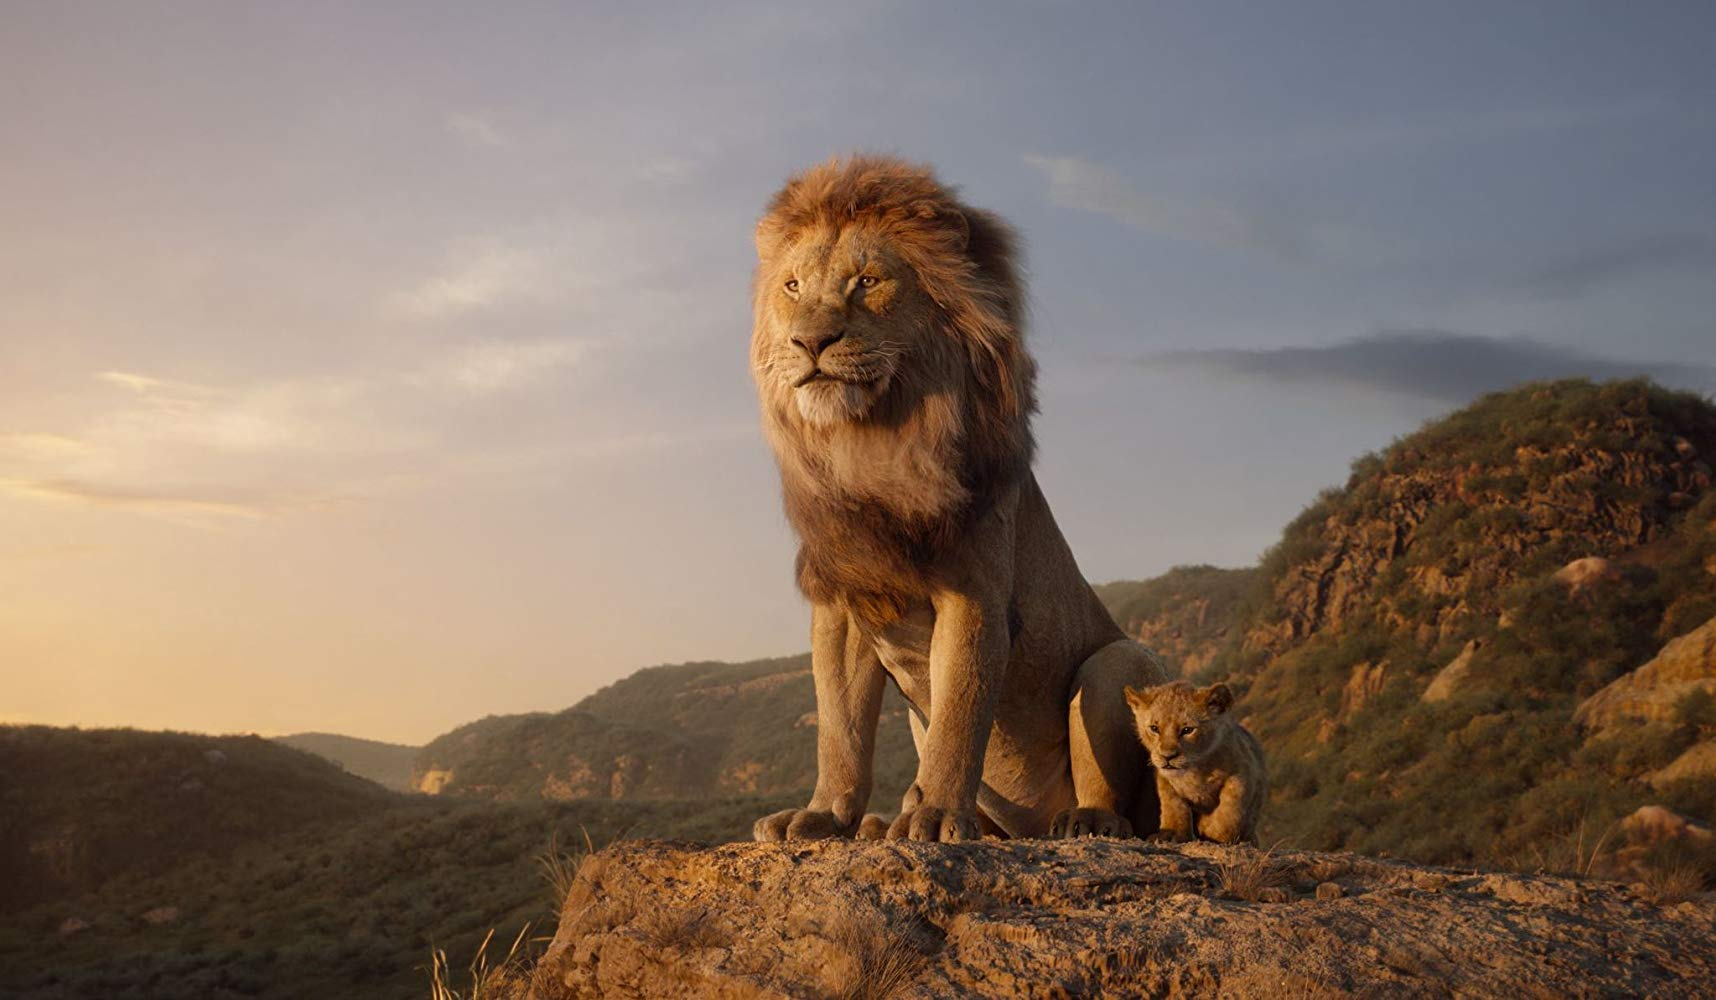 Simba Lion King 2019 , HD Wallpaper & Backgrounds